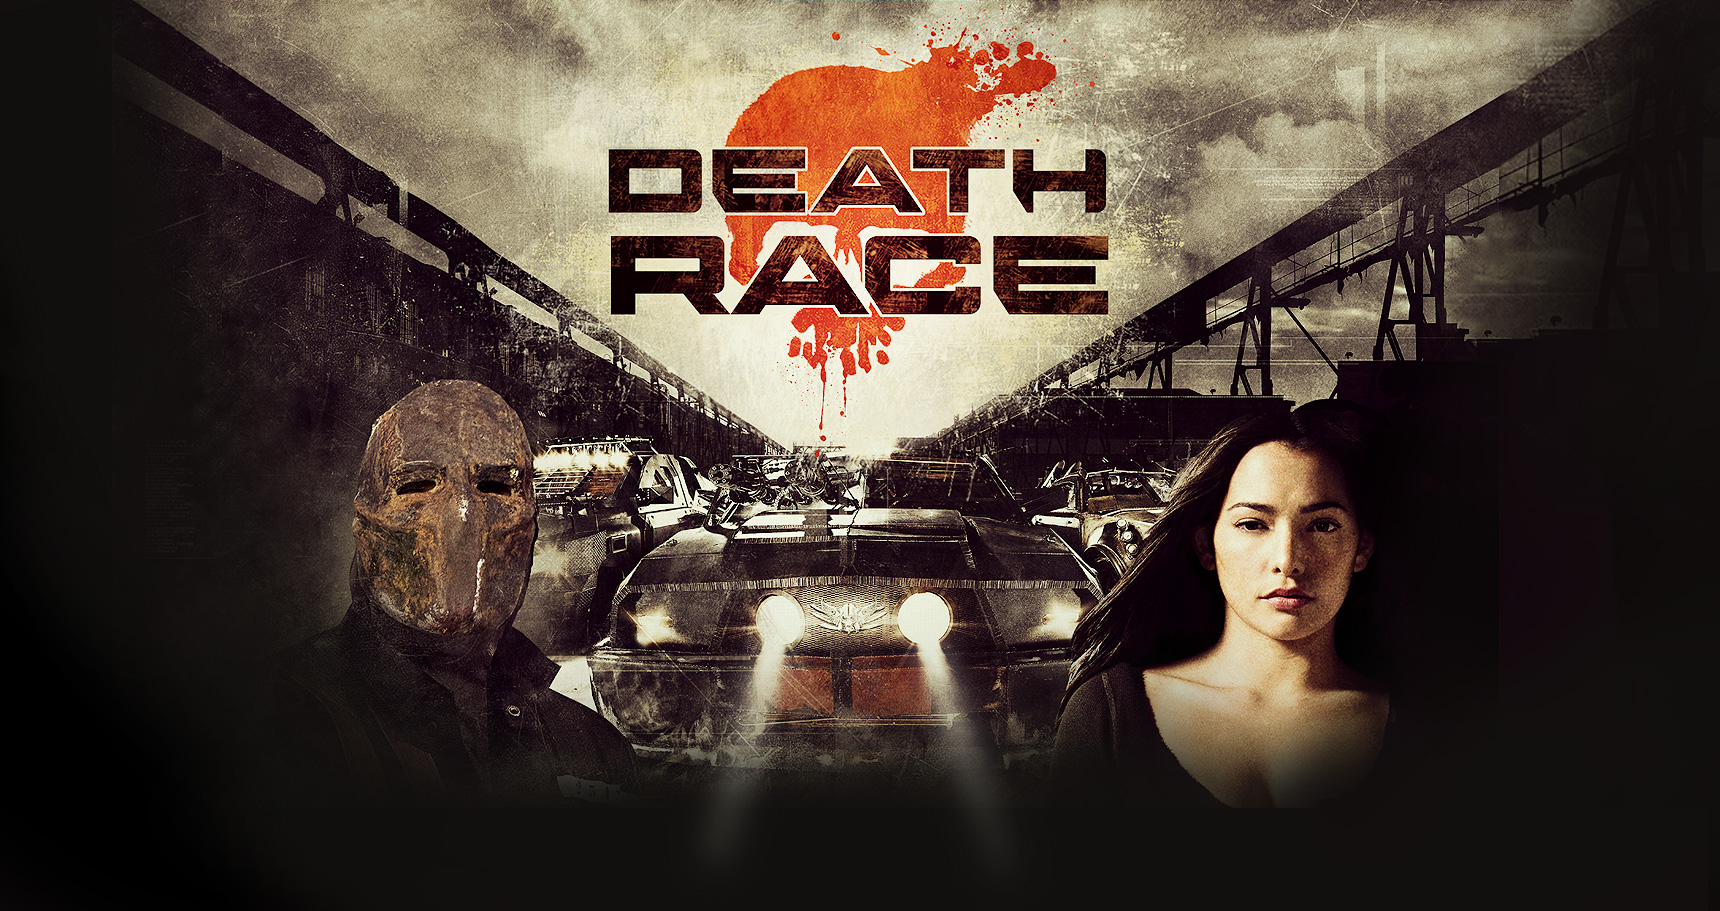 Drive for freedom and survival in Death Race